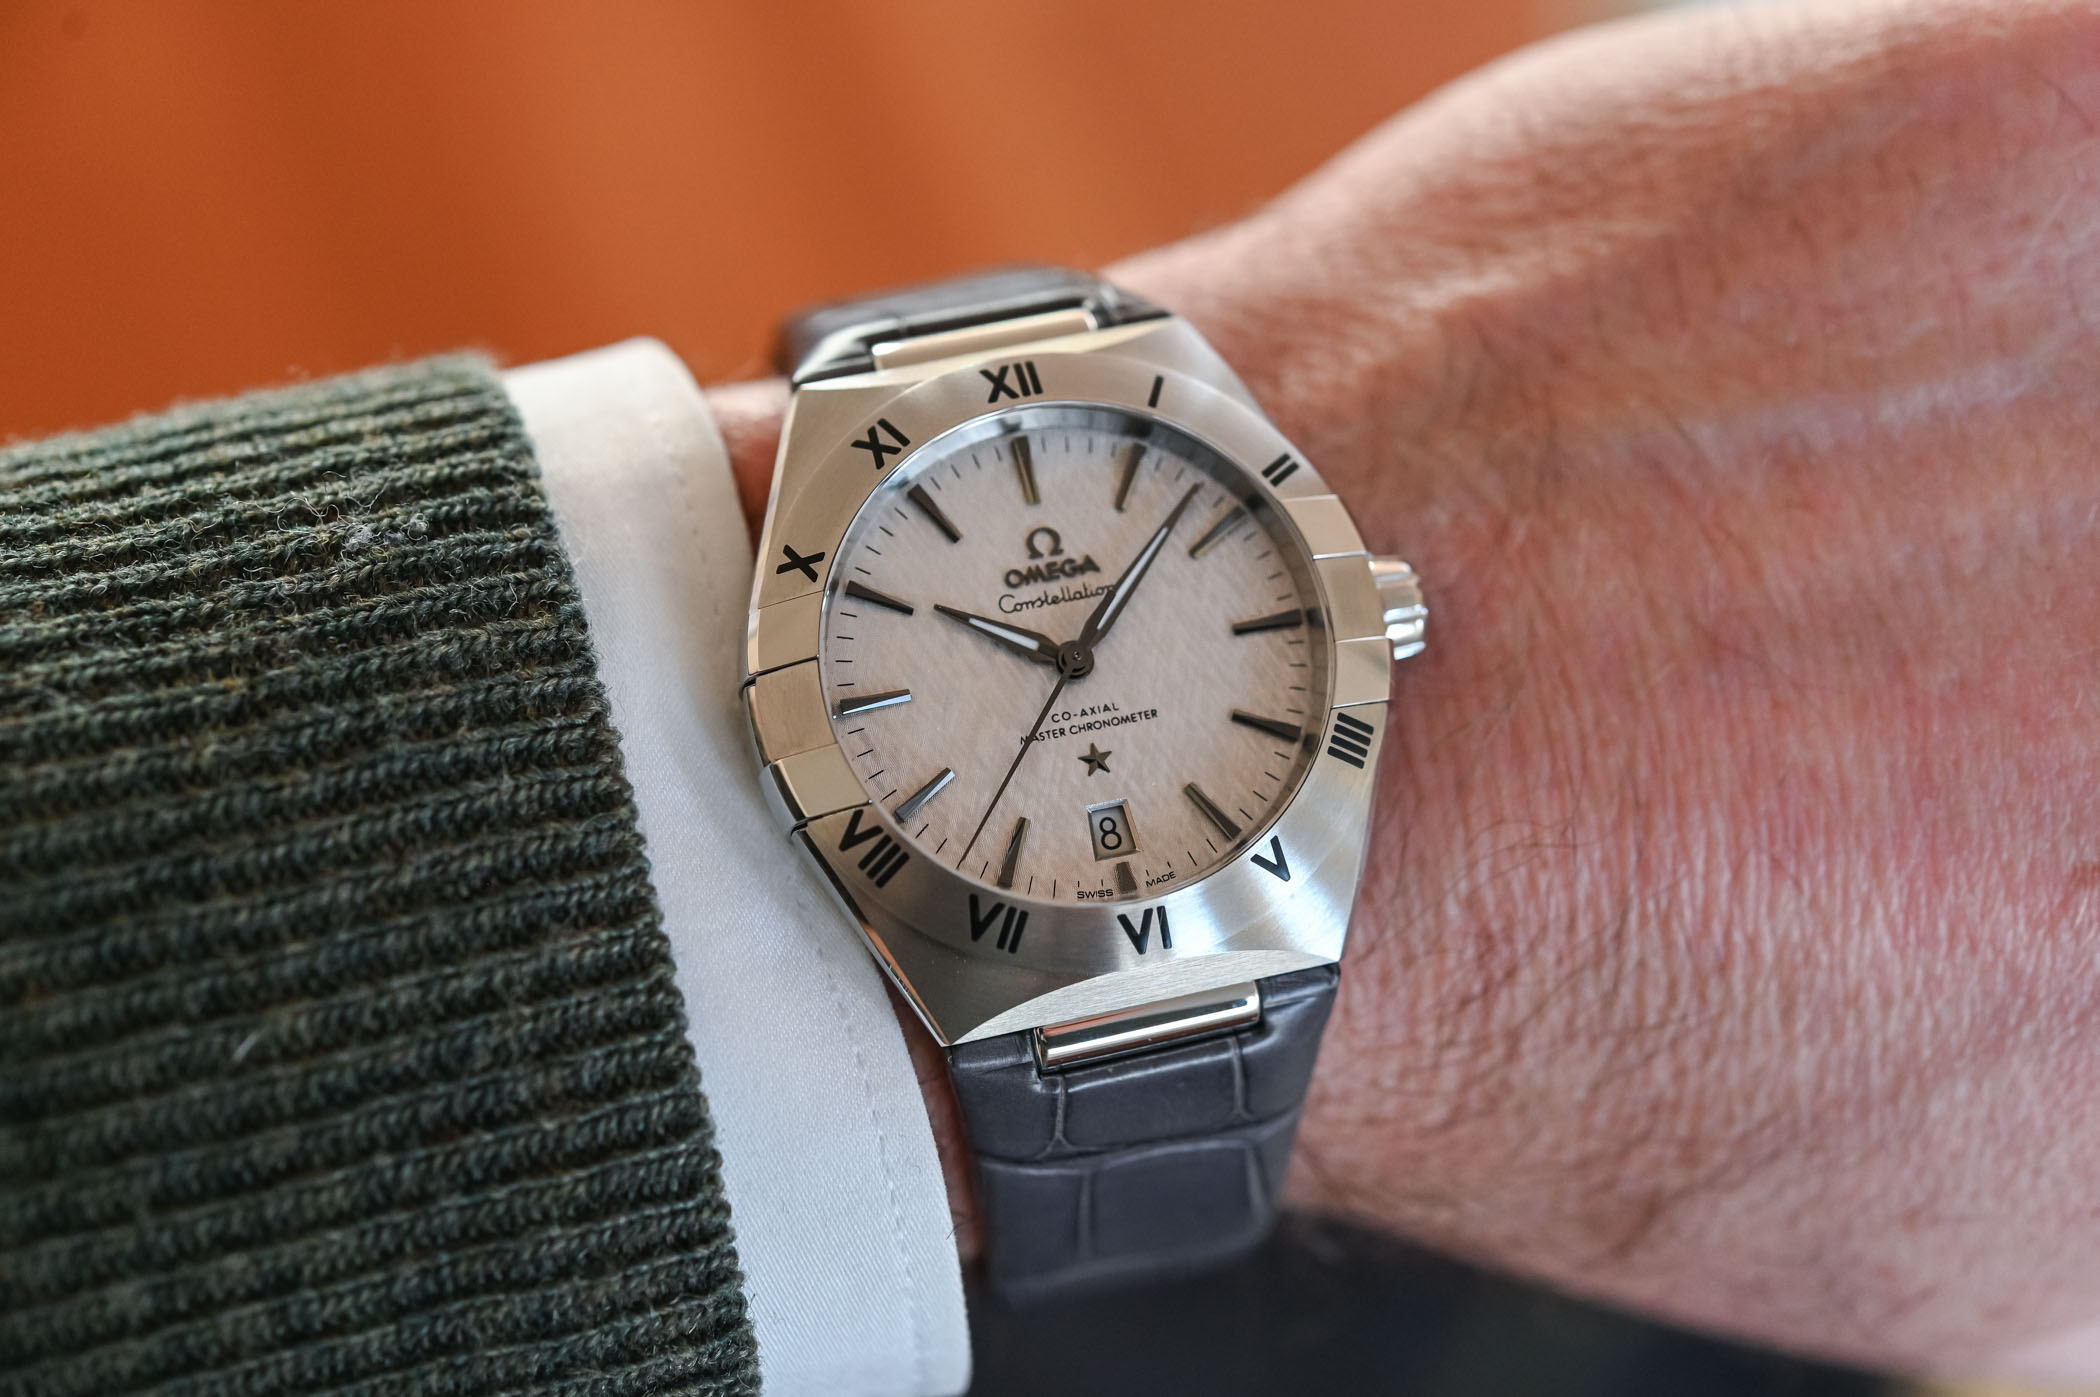 2020-Omega-Constellation-Co-Axial-Master-Chronometer-39mm-review-8.jpg